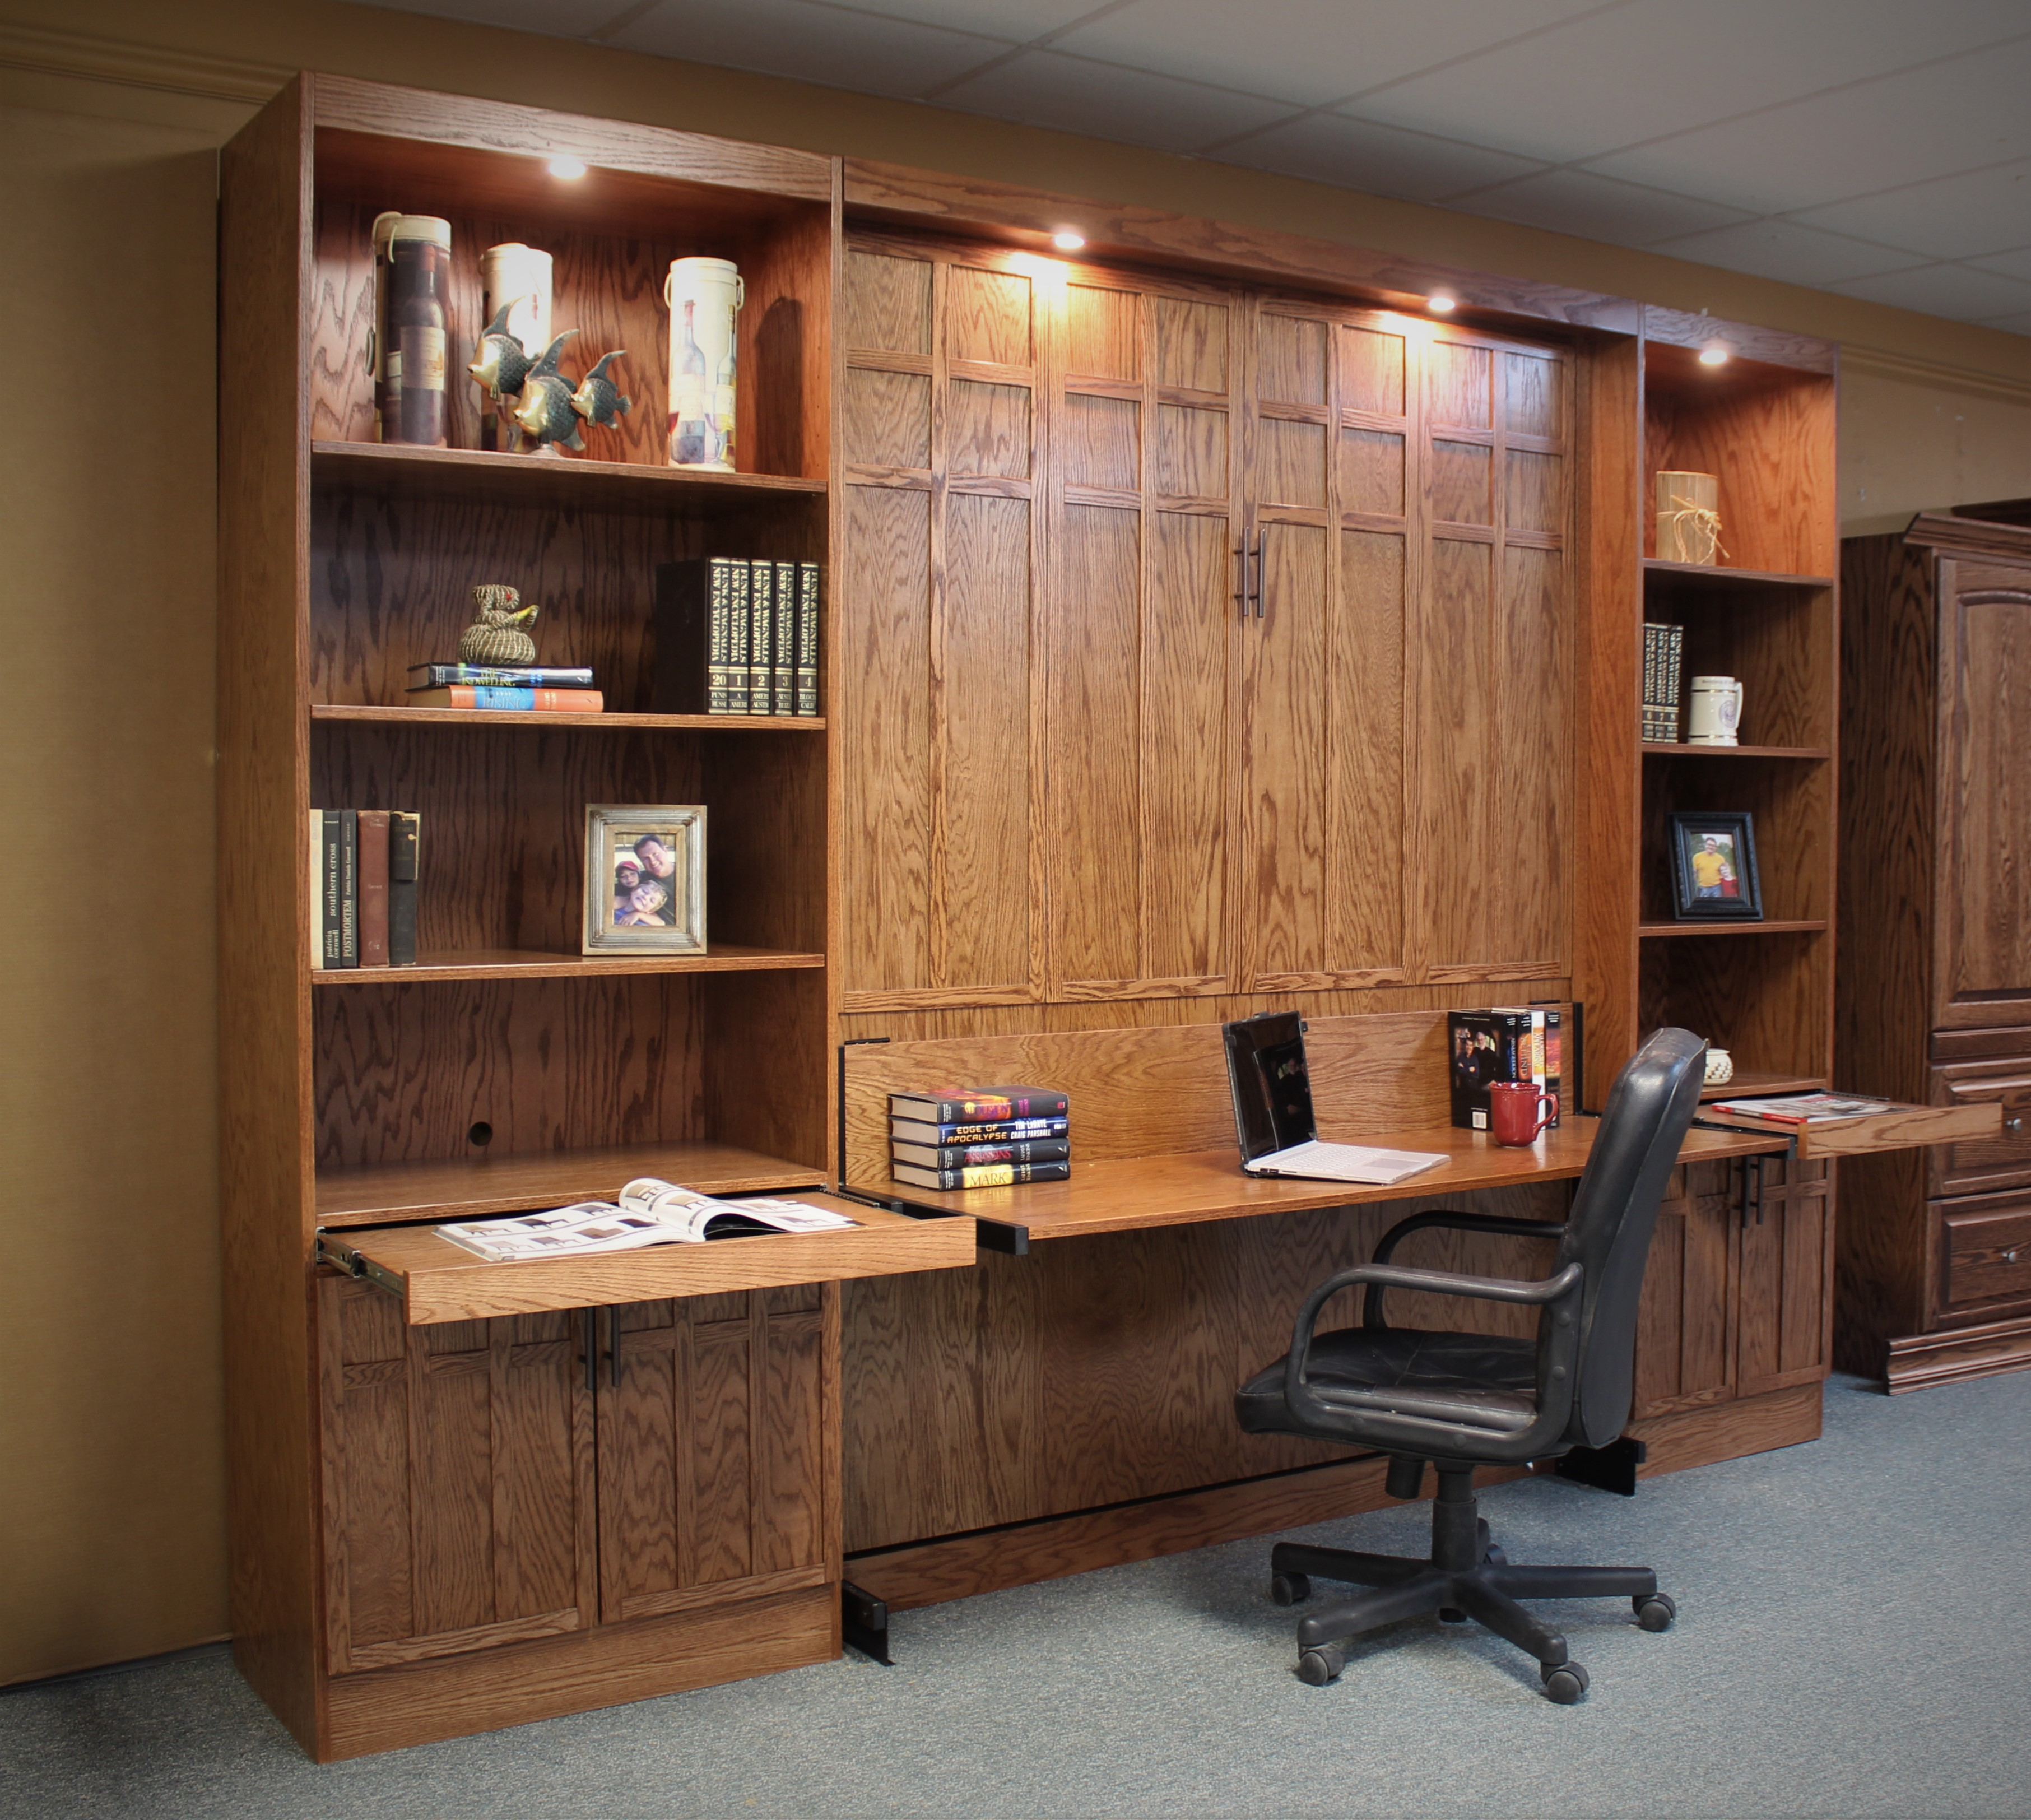 Style 124-0220 Murphy Bed with Desk